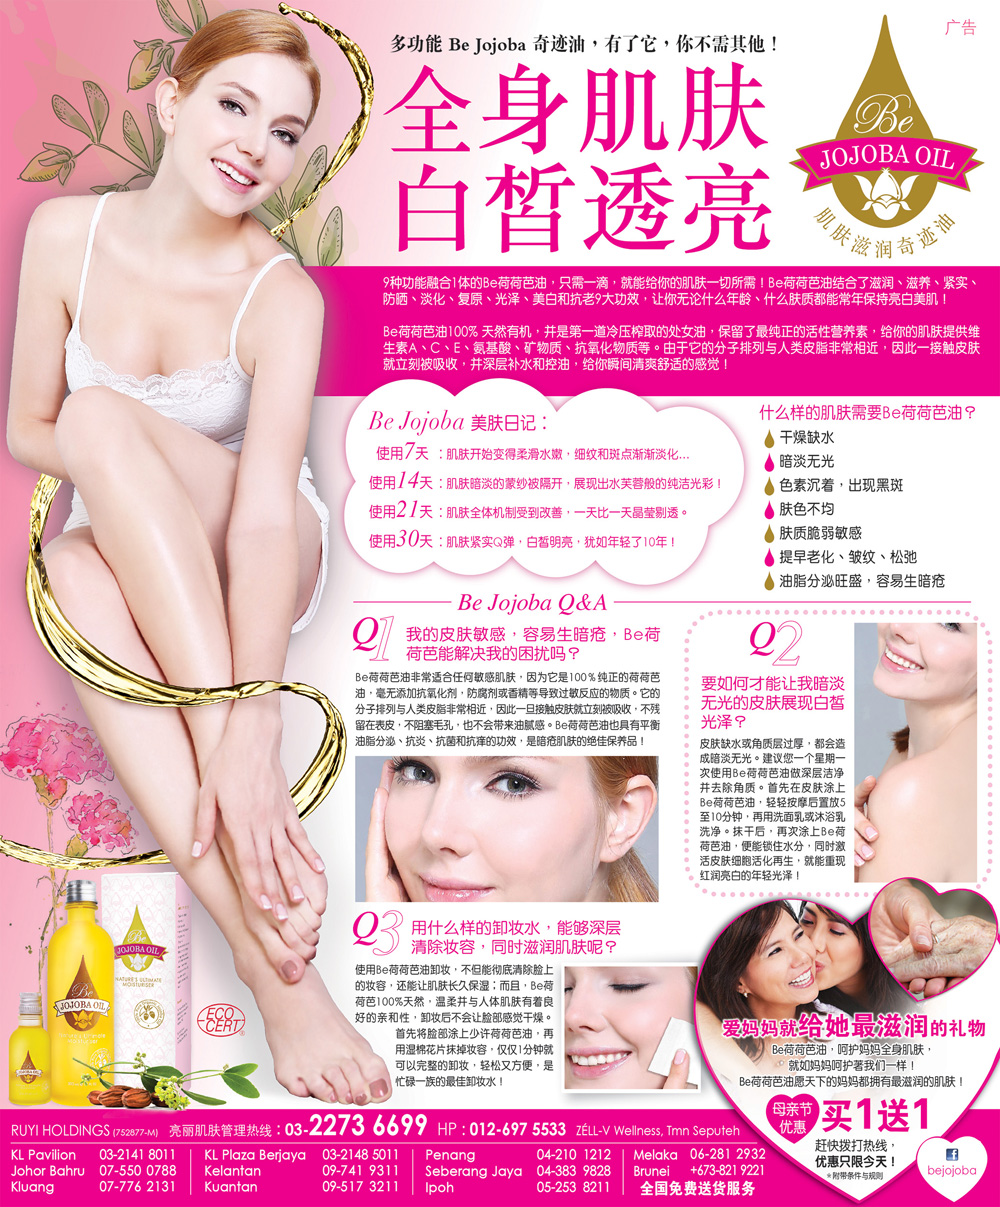 Be Jojoba @ Sin Chew (May' 16)